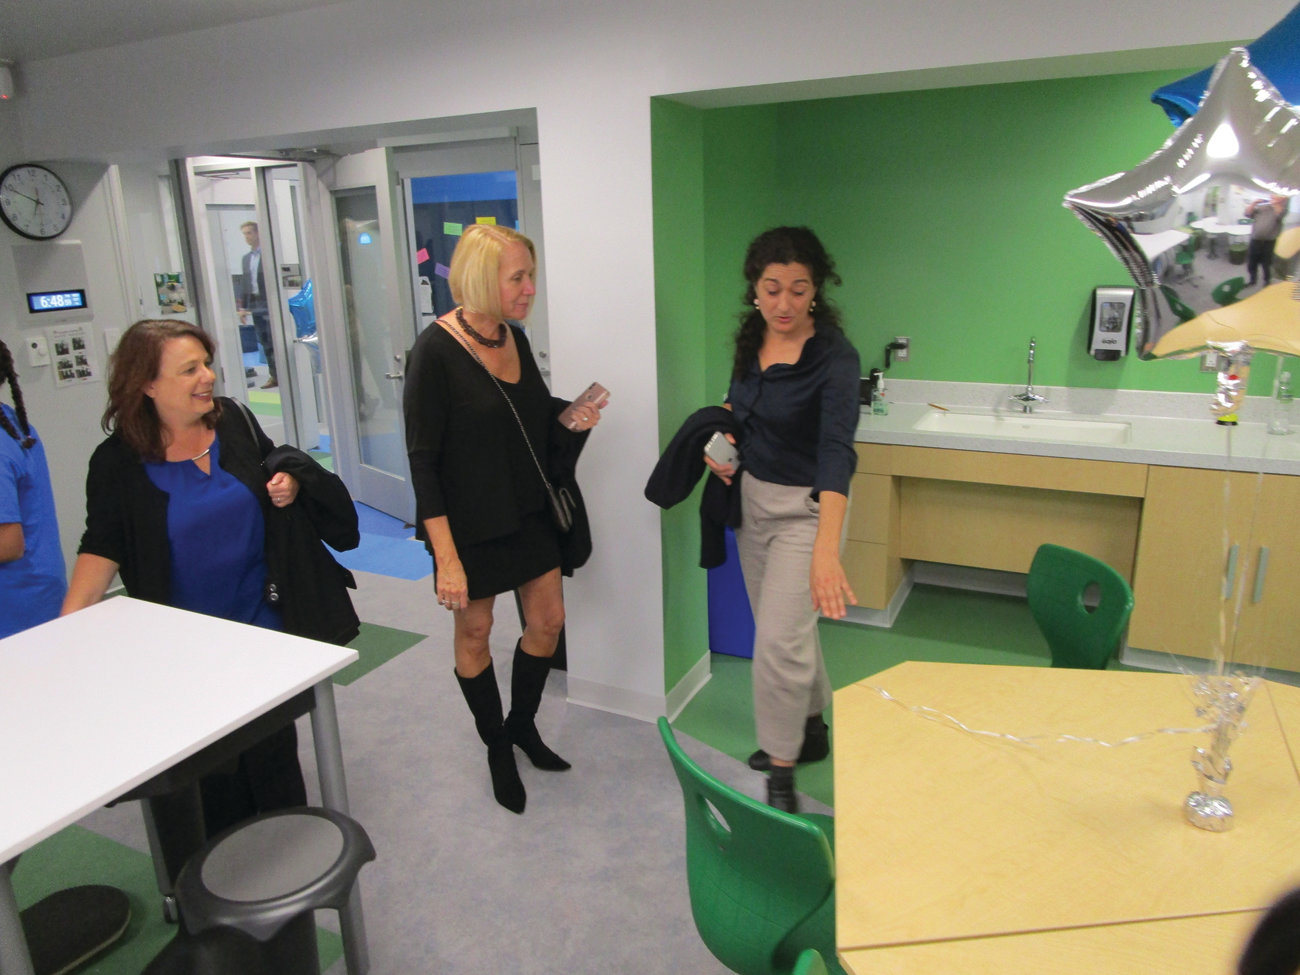 SHARING THE VISION: Avigail Milder of Philadelphia-based Milder Office Inc., right, speaks with School Committee member Janice Ruggieri, left, and state Sen. Hanna Gallo about some of the furniture her company created for the renovated wing at Eden Park.